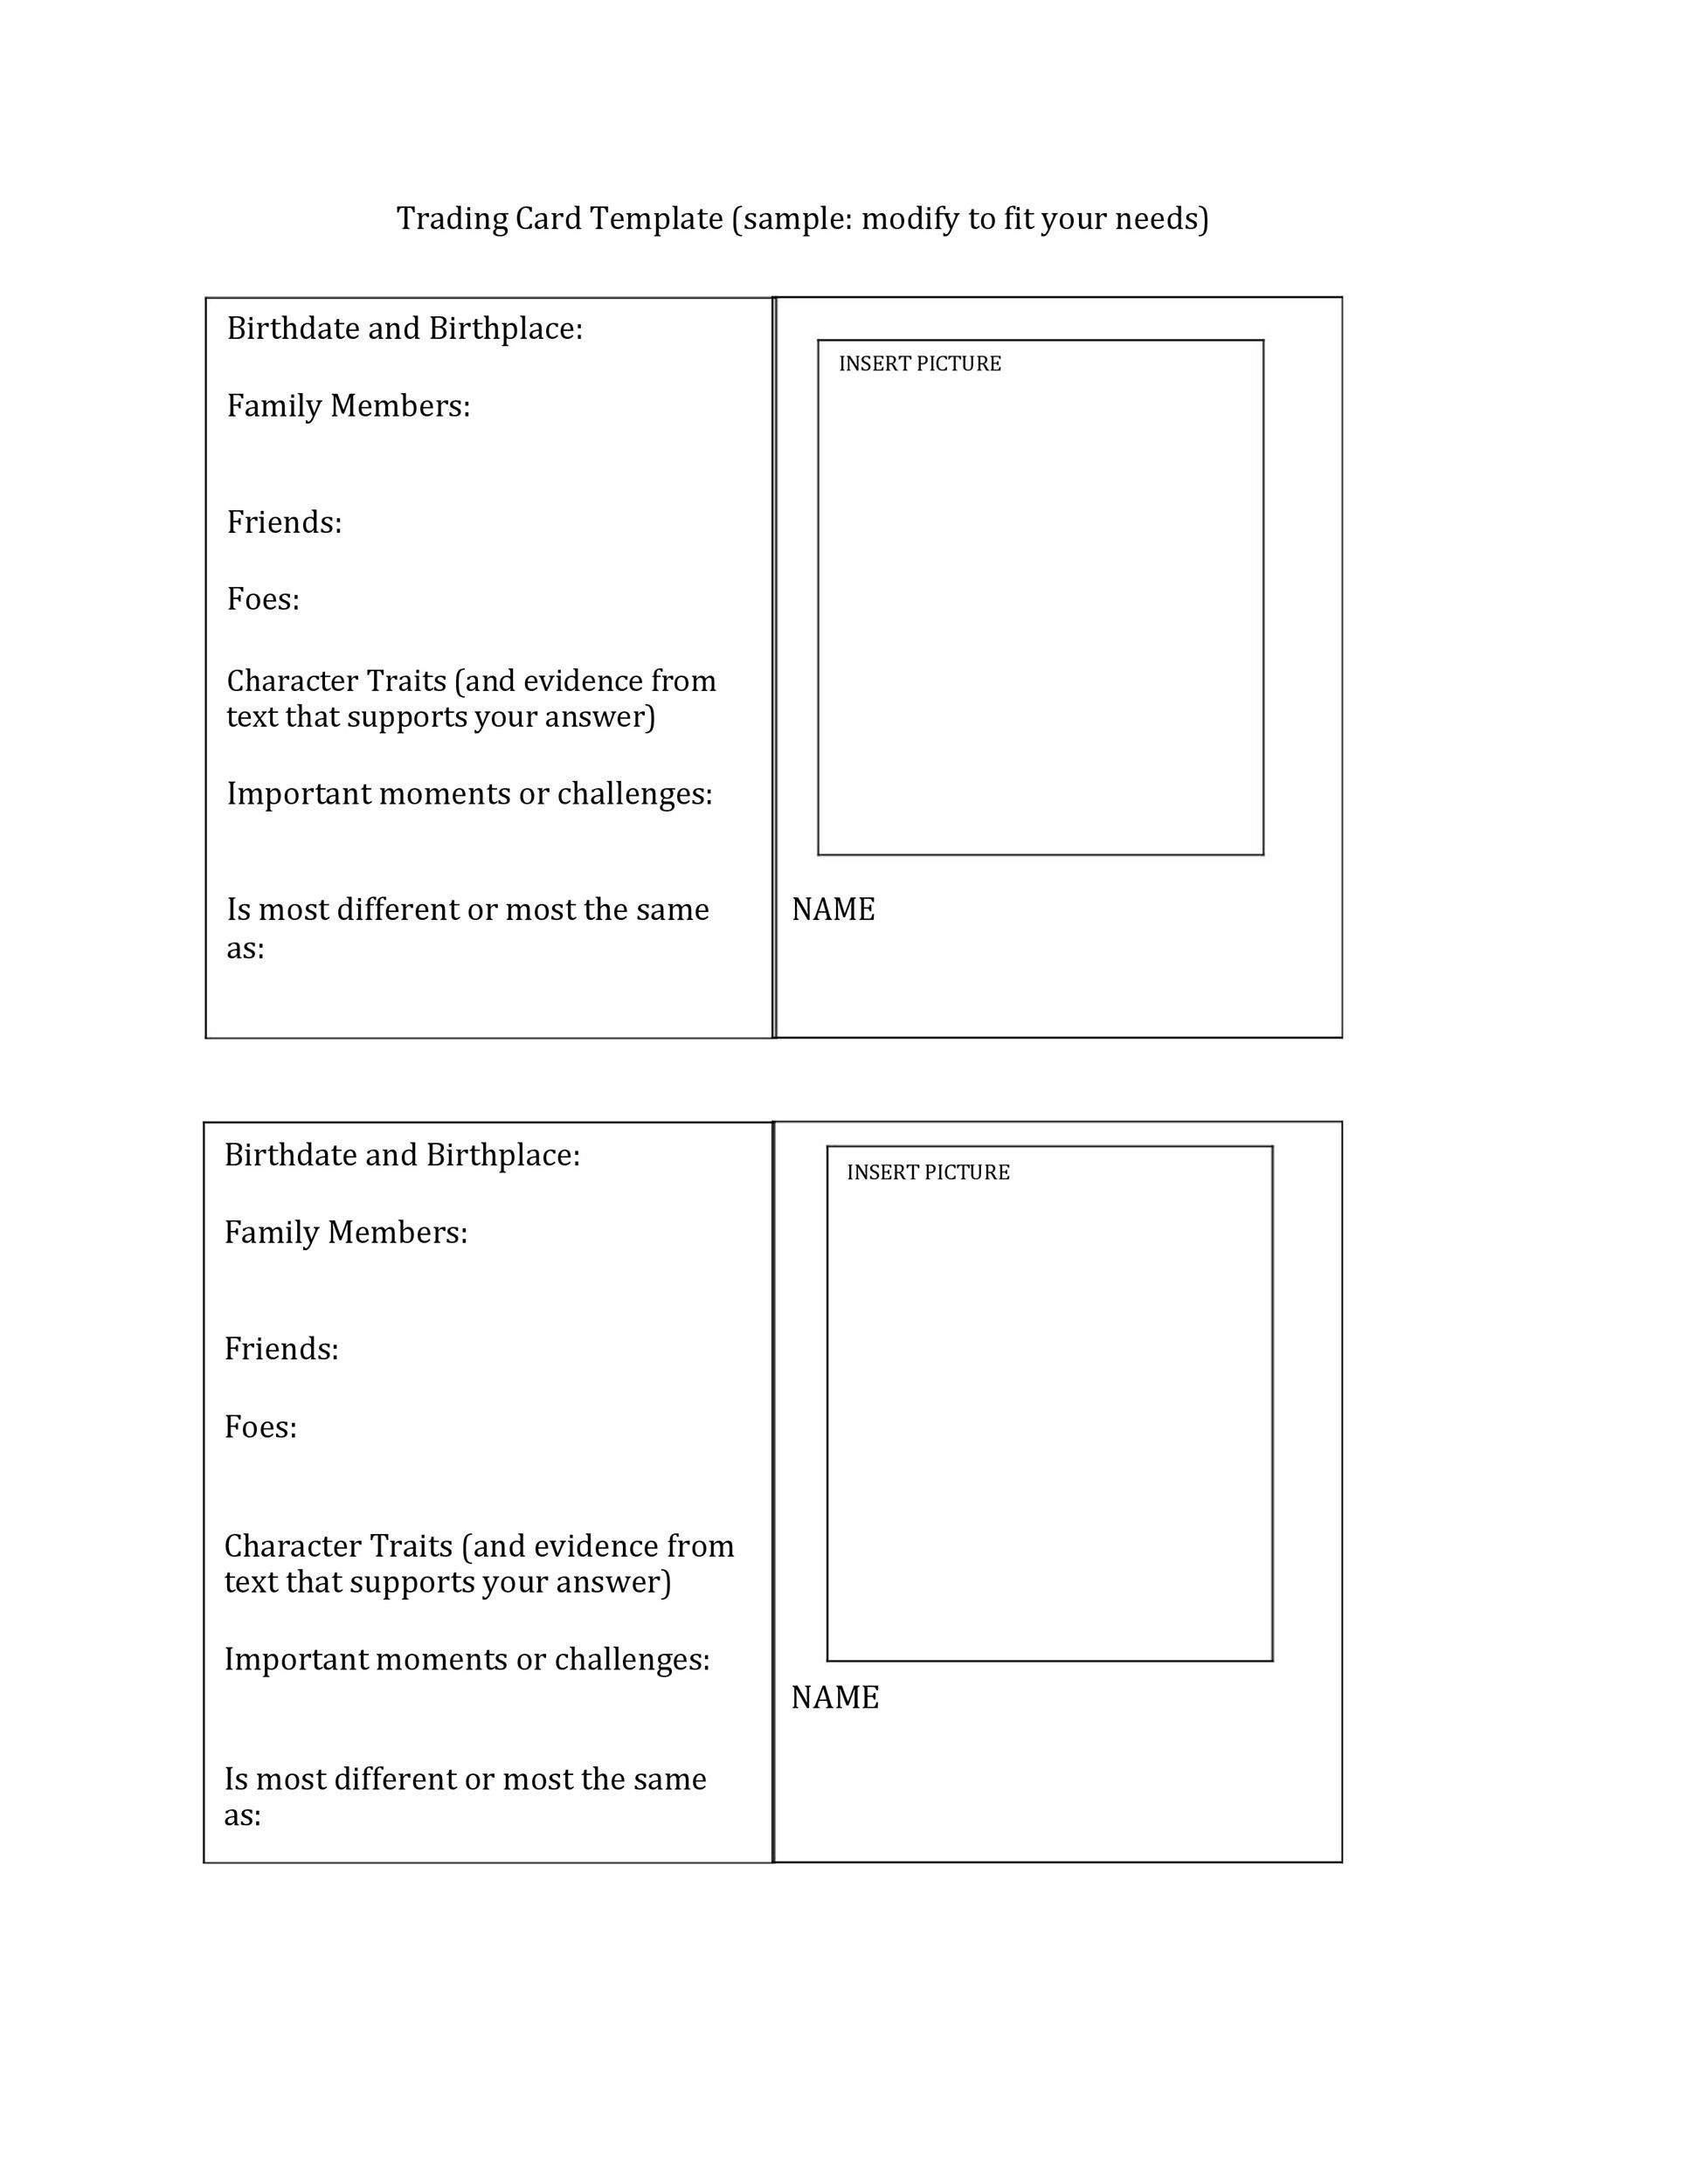 Blank Trading Card Template In 2021 Trading Card Template Baseball Card Template Place Card Template